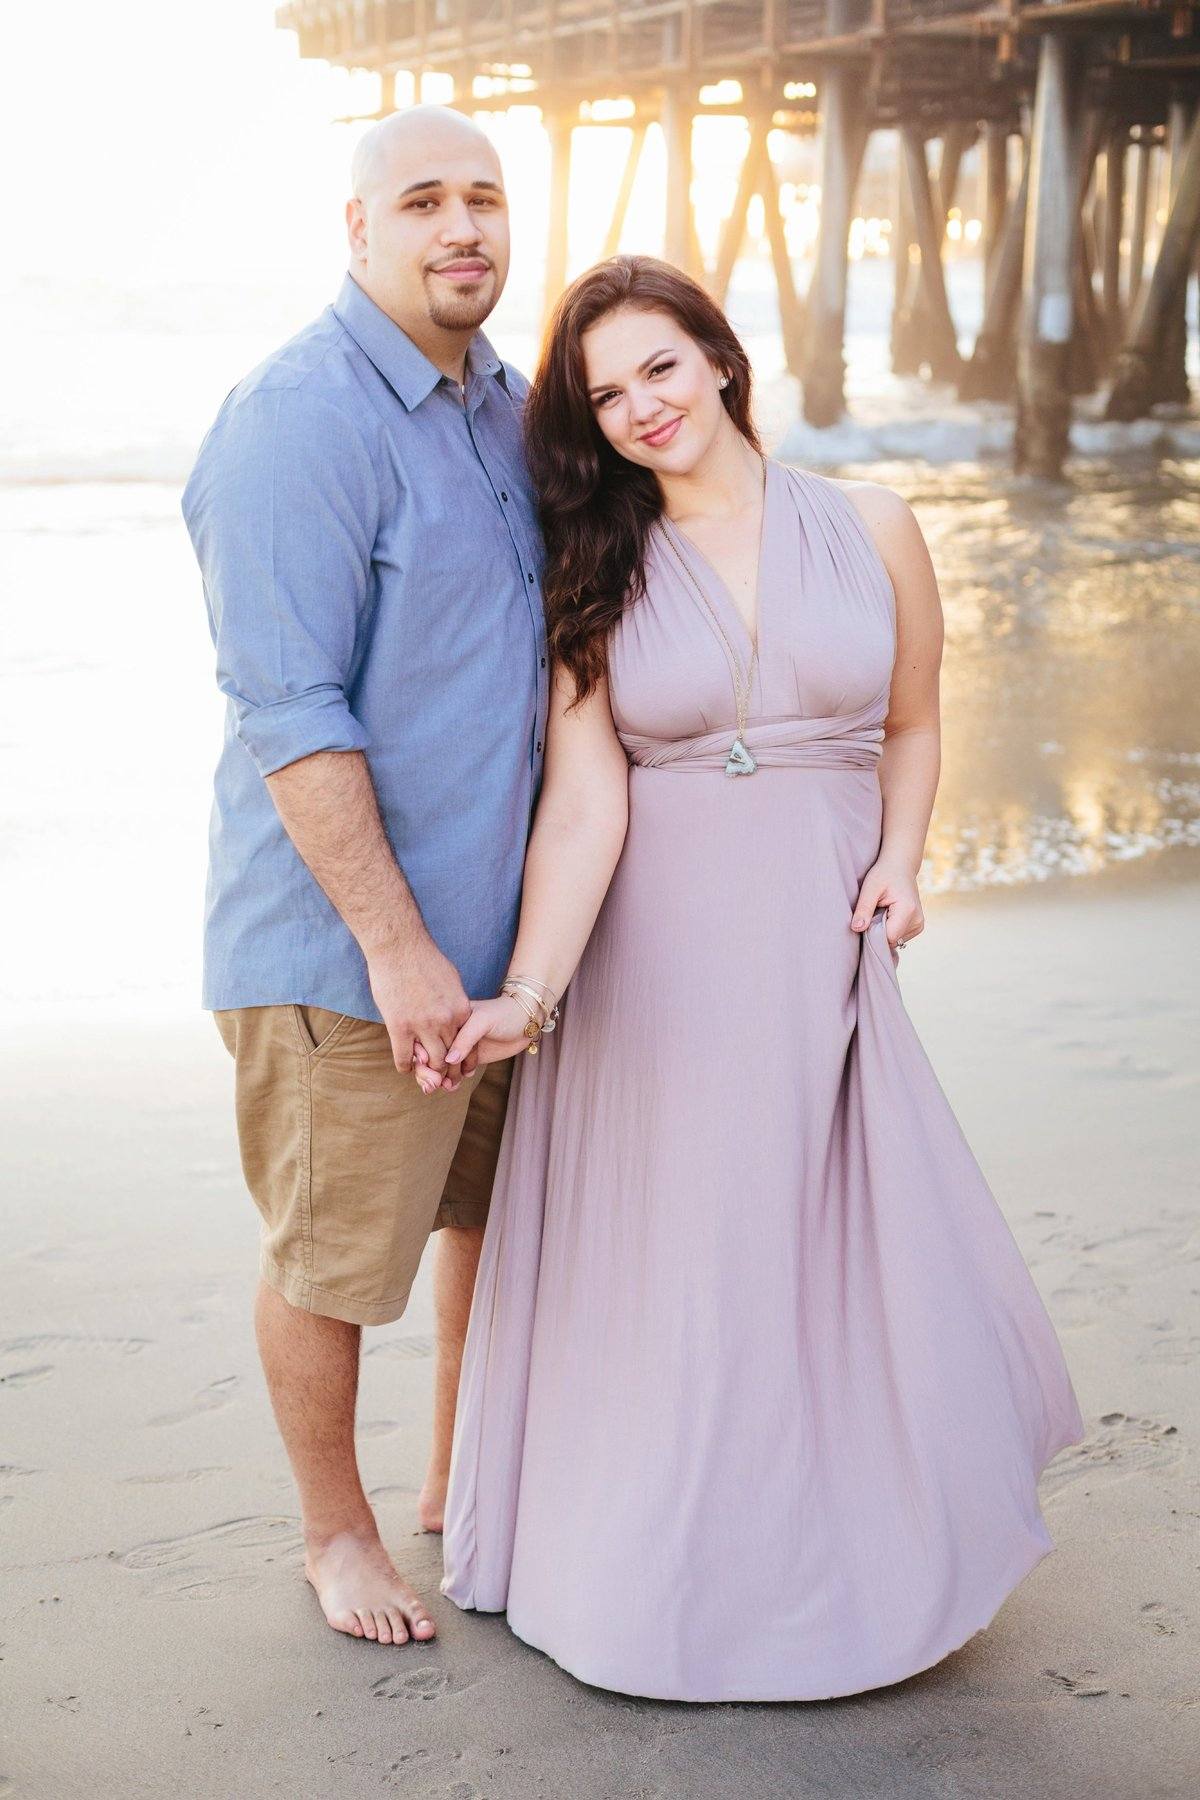 Engagement Photos-Jodee Debes Photography-236